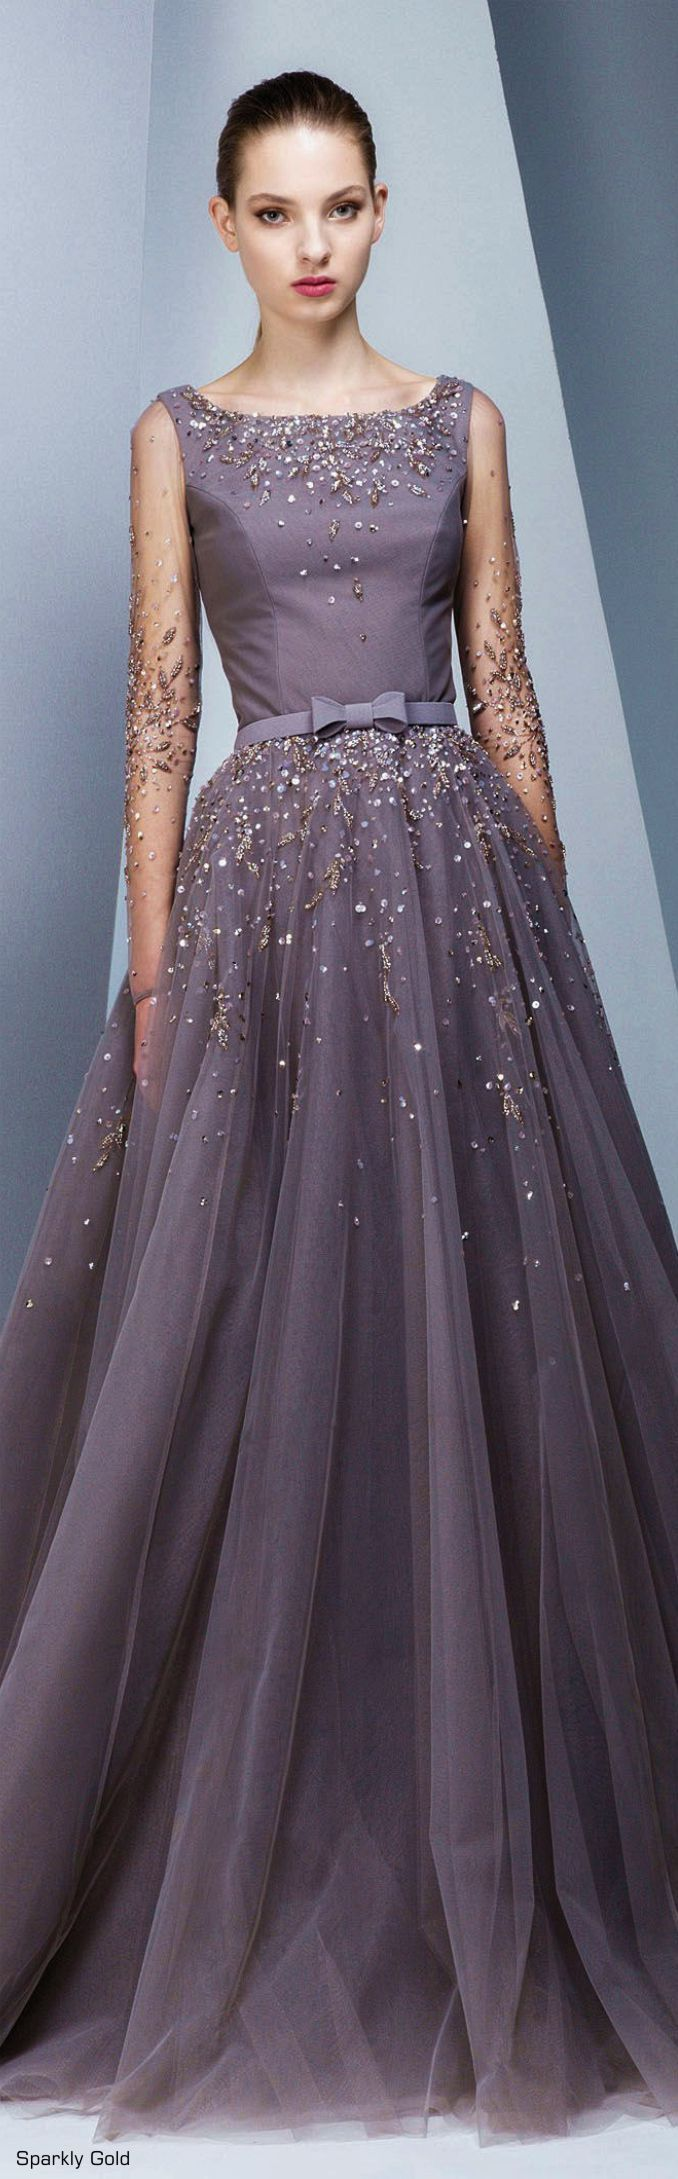 Pin by nagham on your pinterest likes pinterest gowns prom and